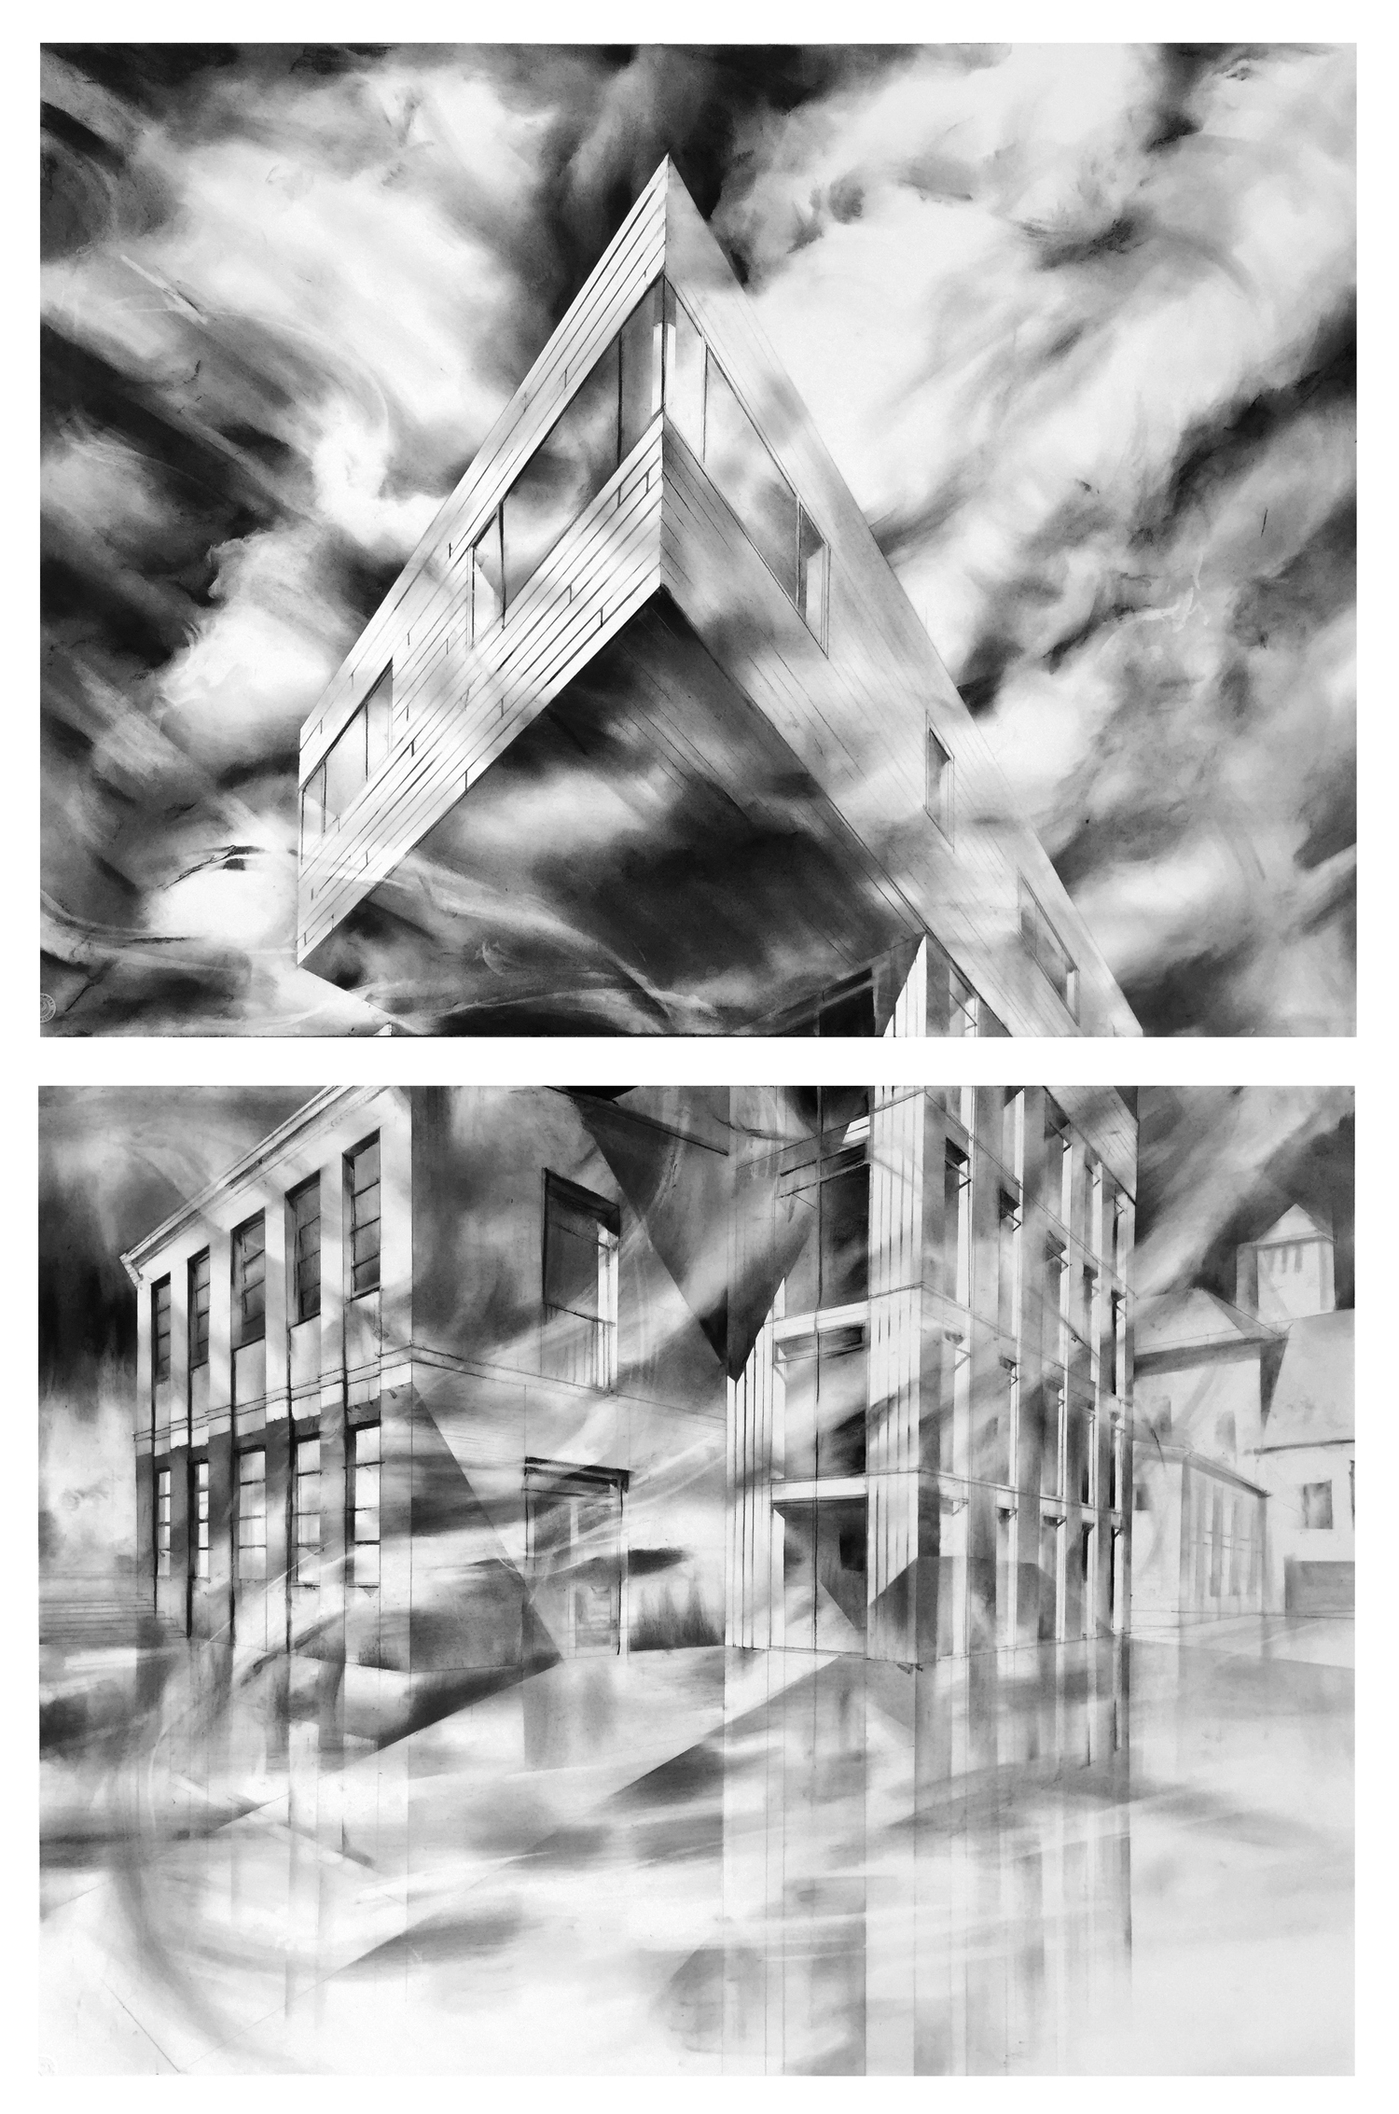 recent drawings drawing for 2017 exhibit at the Architektur Galerie Berlin, Germany